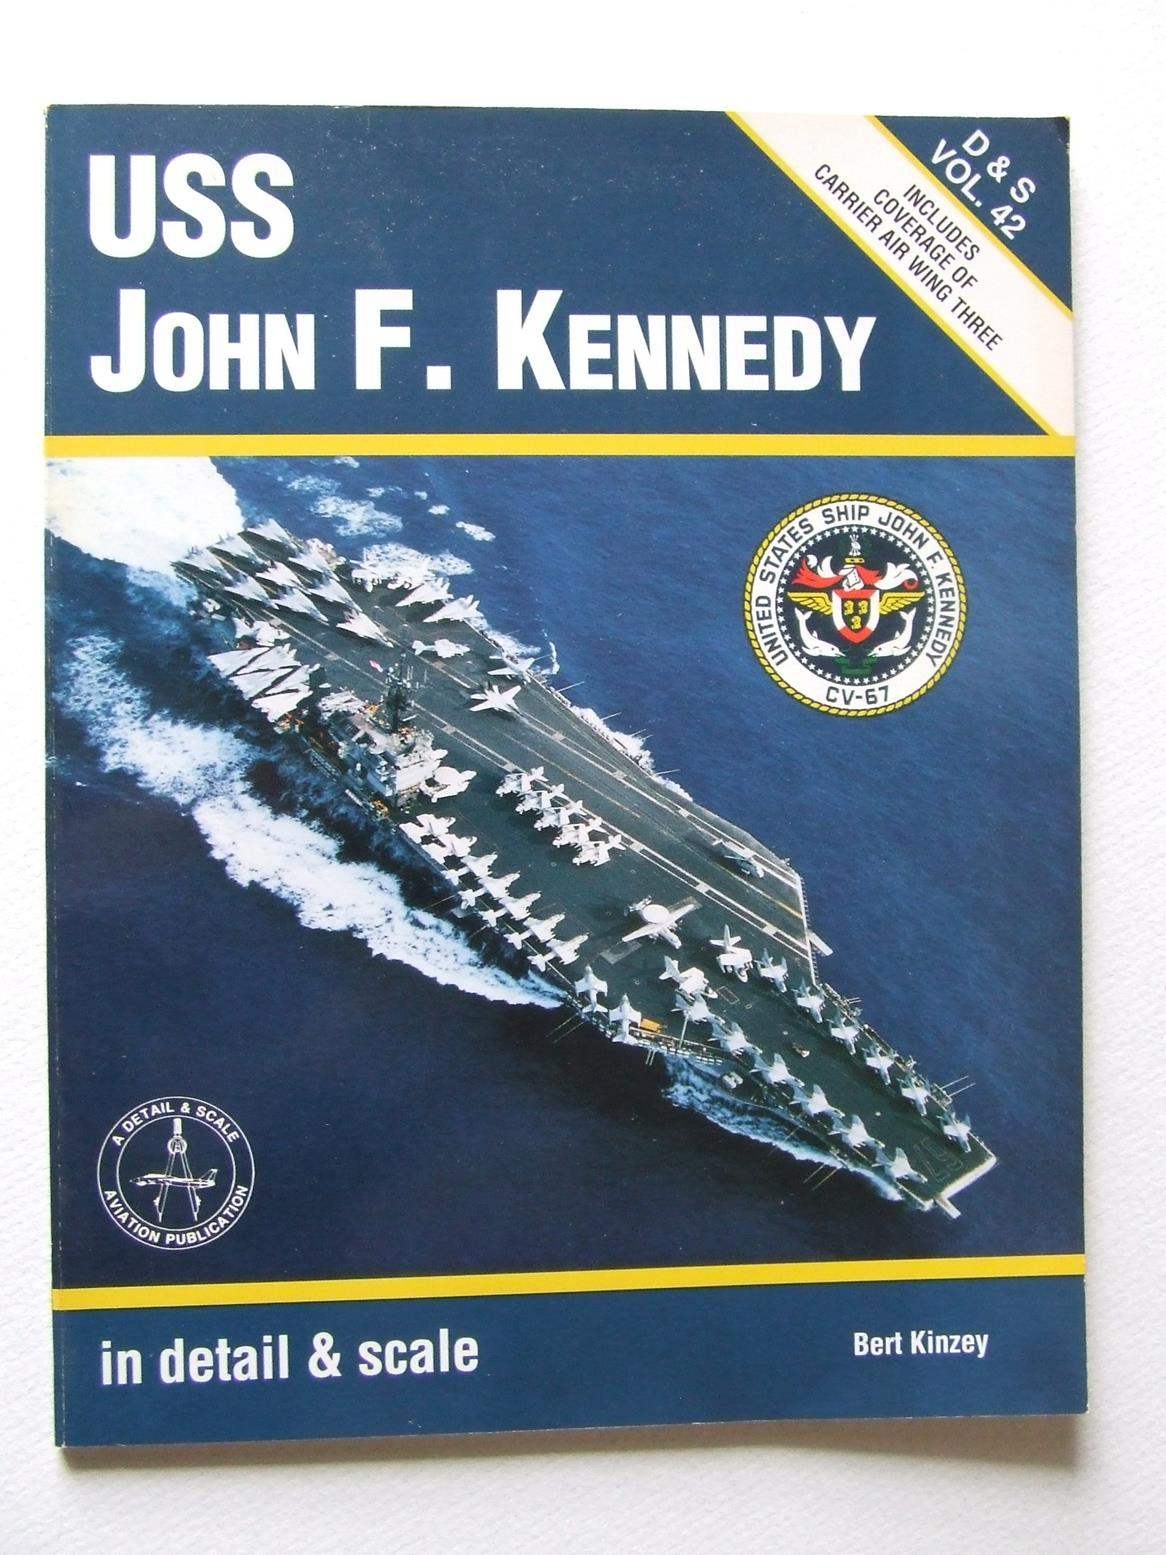 USS John F. Kennedy in detail and scale